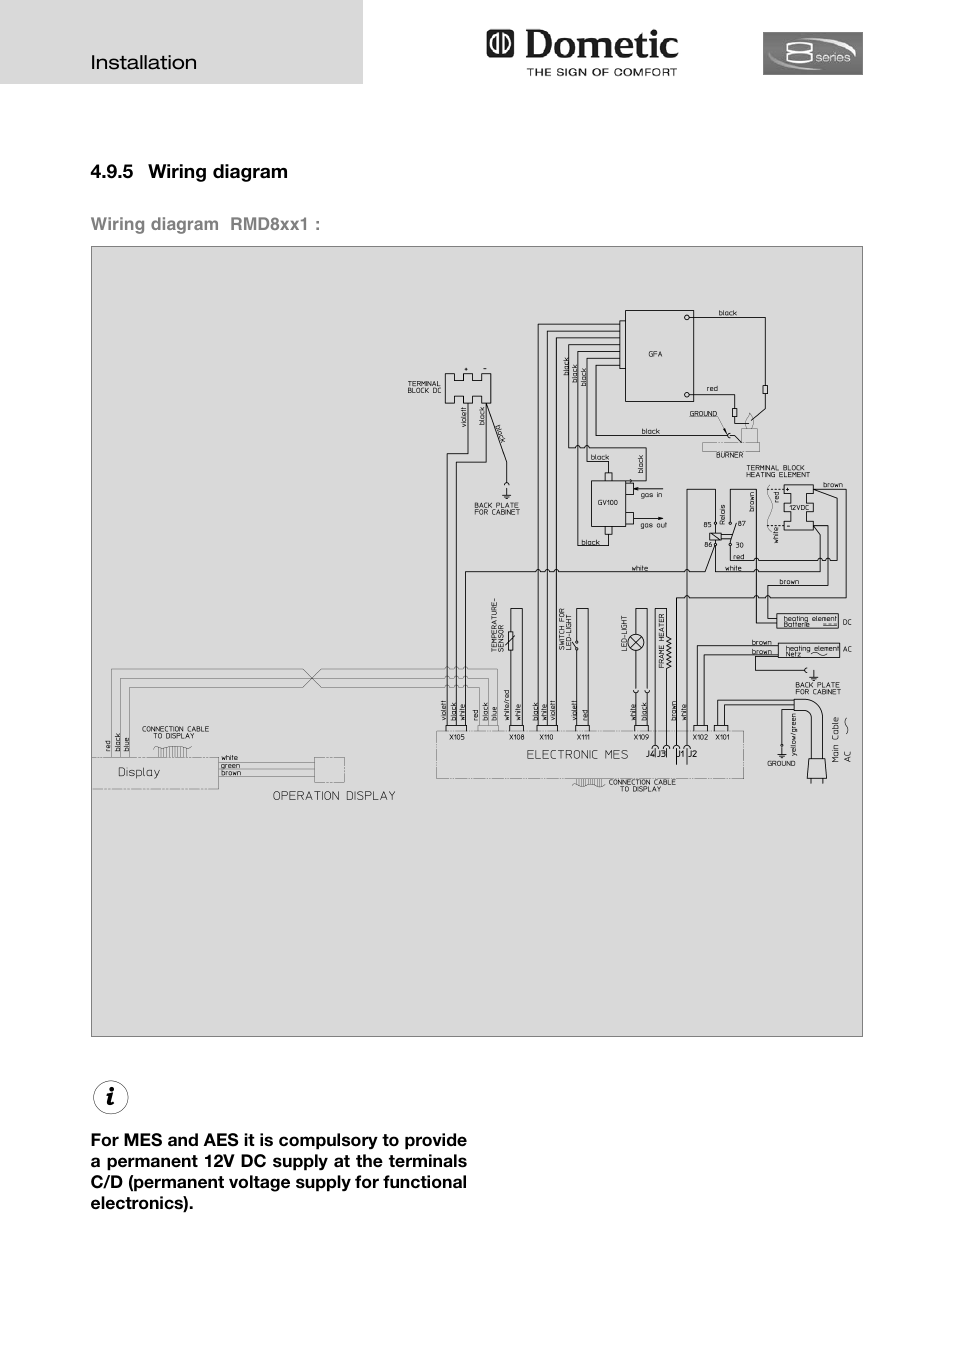 dometic ccc2 thermostat wiring diagram kenwood excelon ddx8017 and schematics 27 images